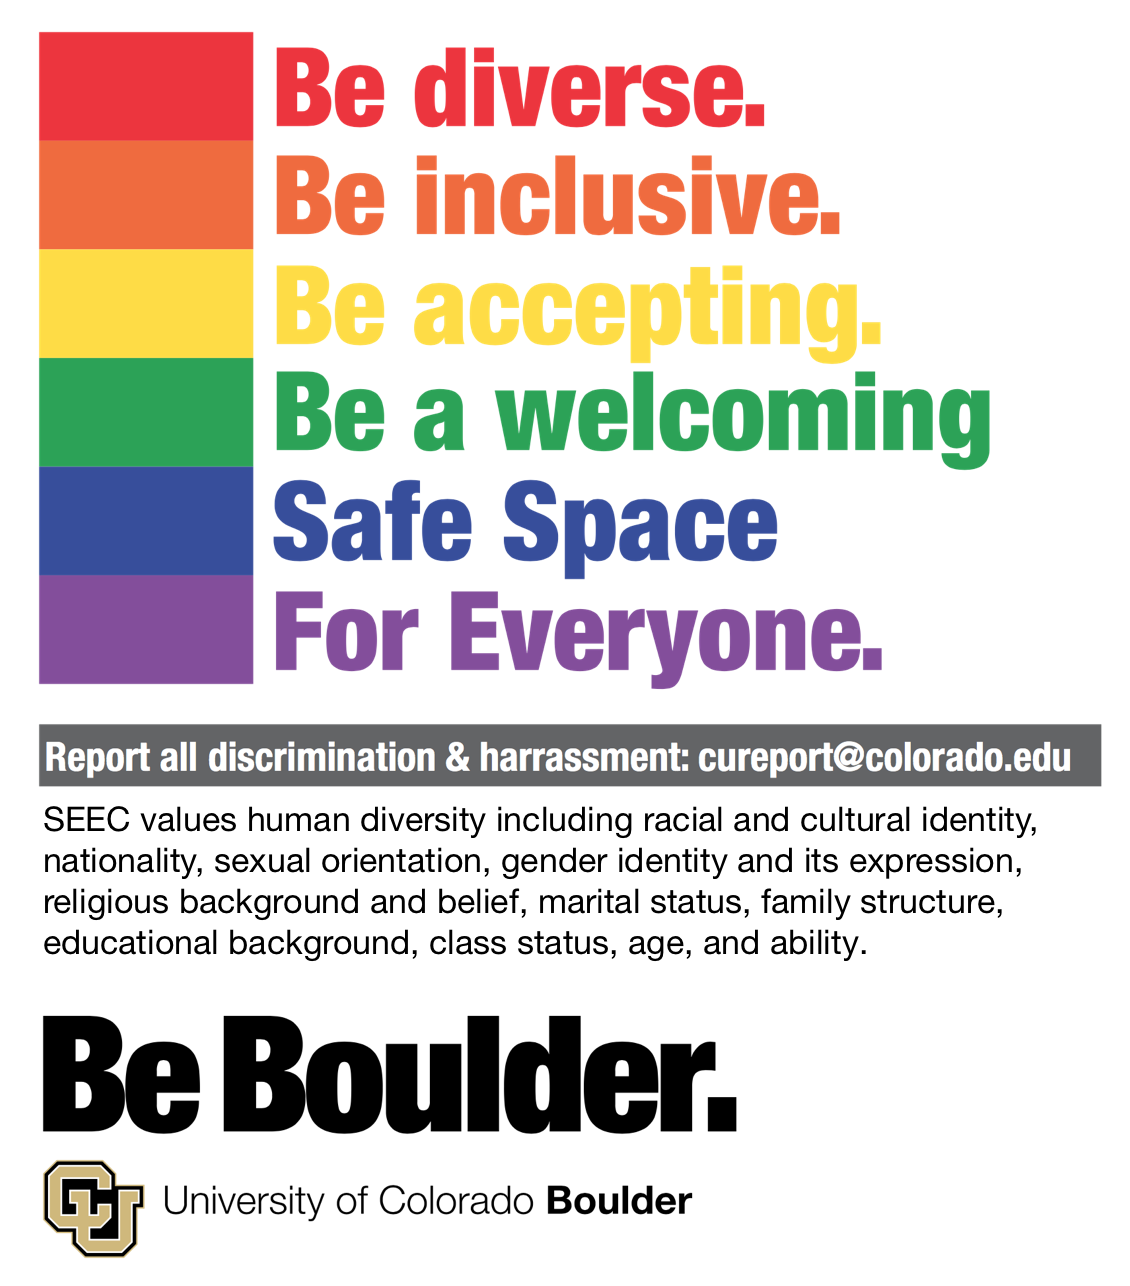 Be diverse. Be inclusive. Be accepting. Be a welcoming Safe Space For Everyone. Be Boulder.